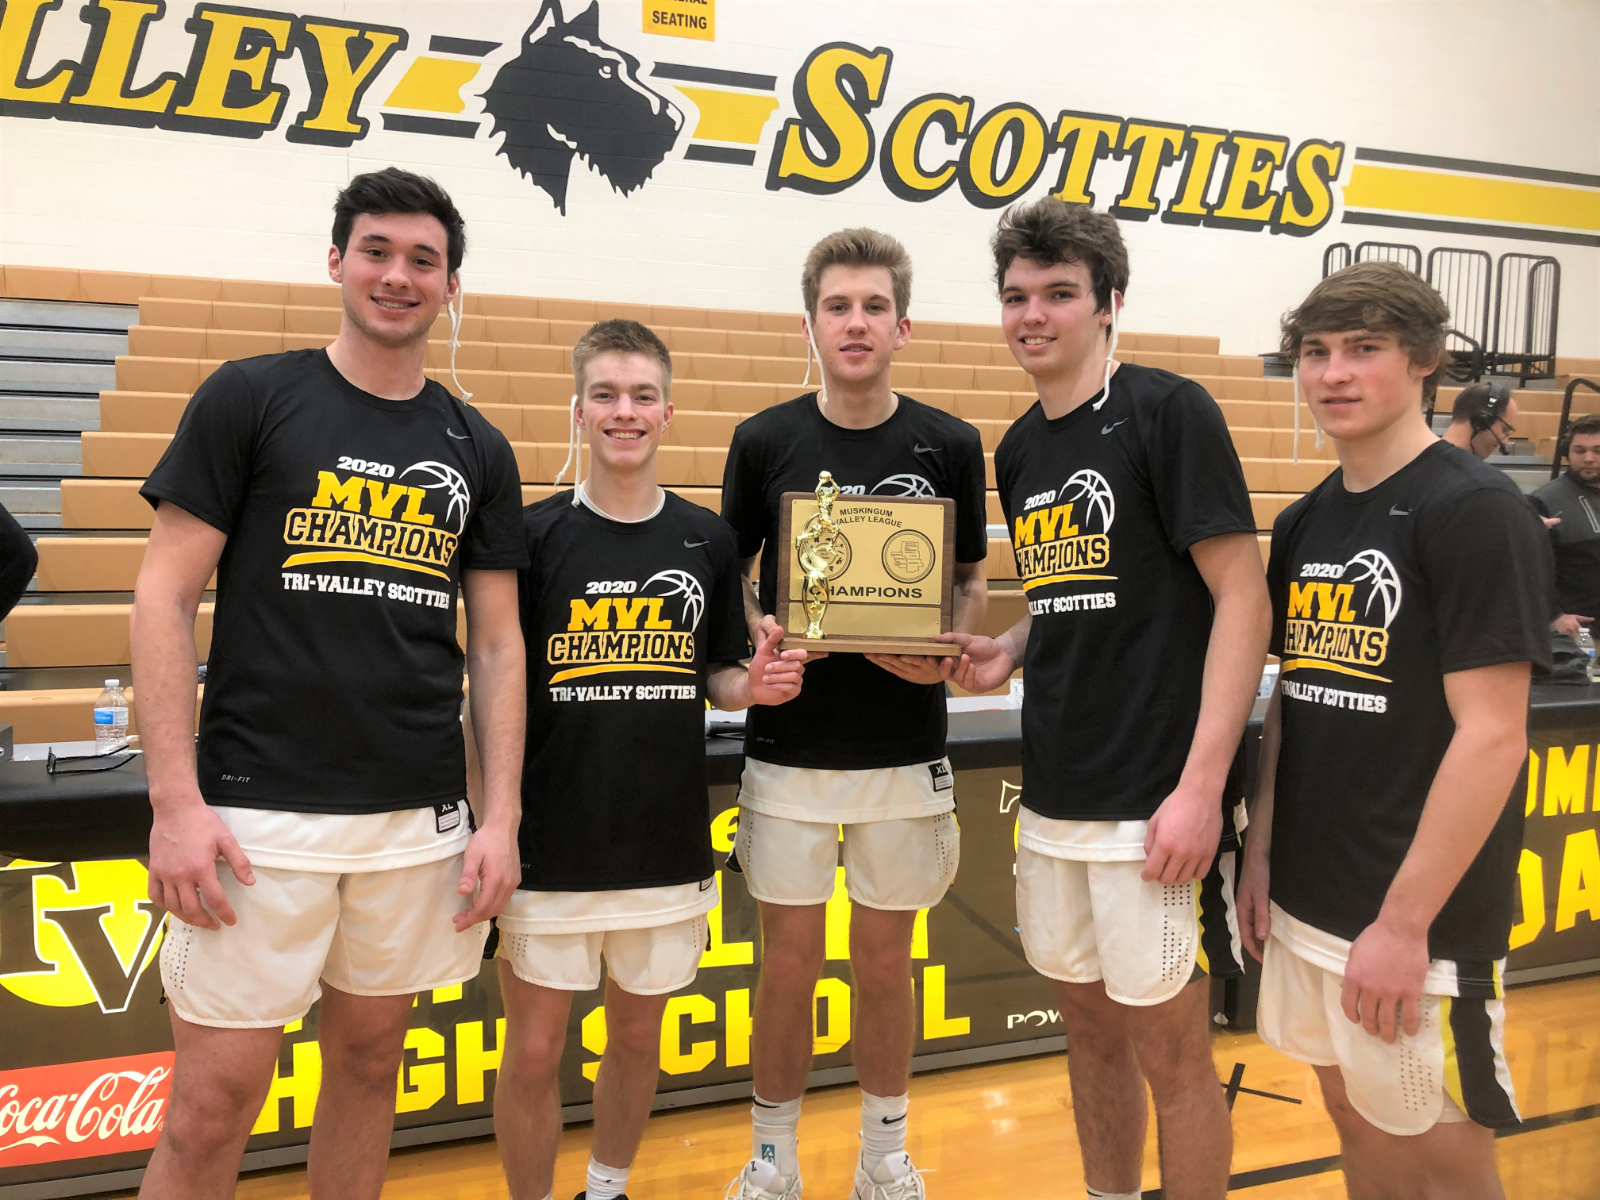 Scotties fall to Meadowbrook in District title game, but proud of 2019-20 season accomplishments